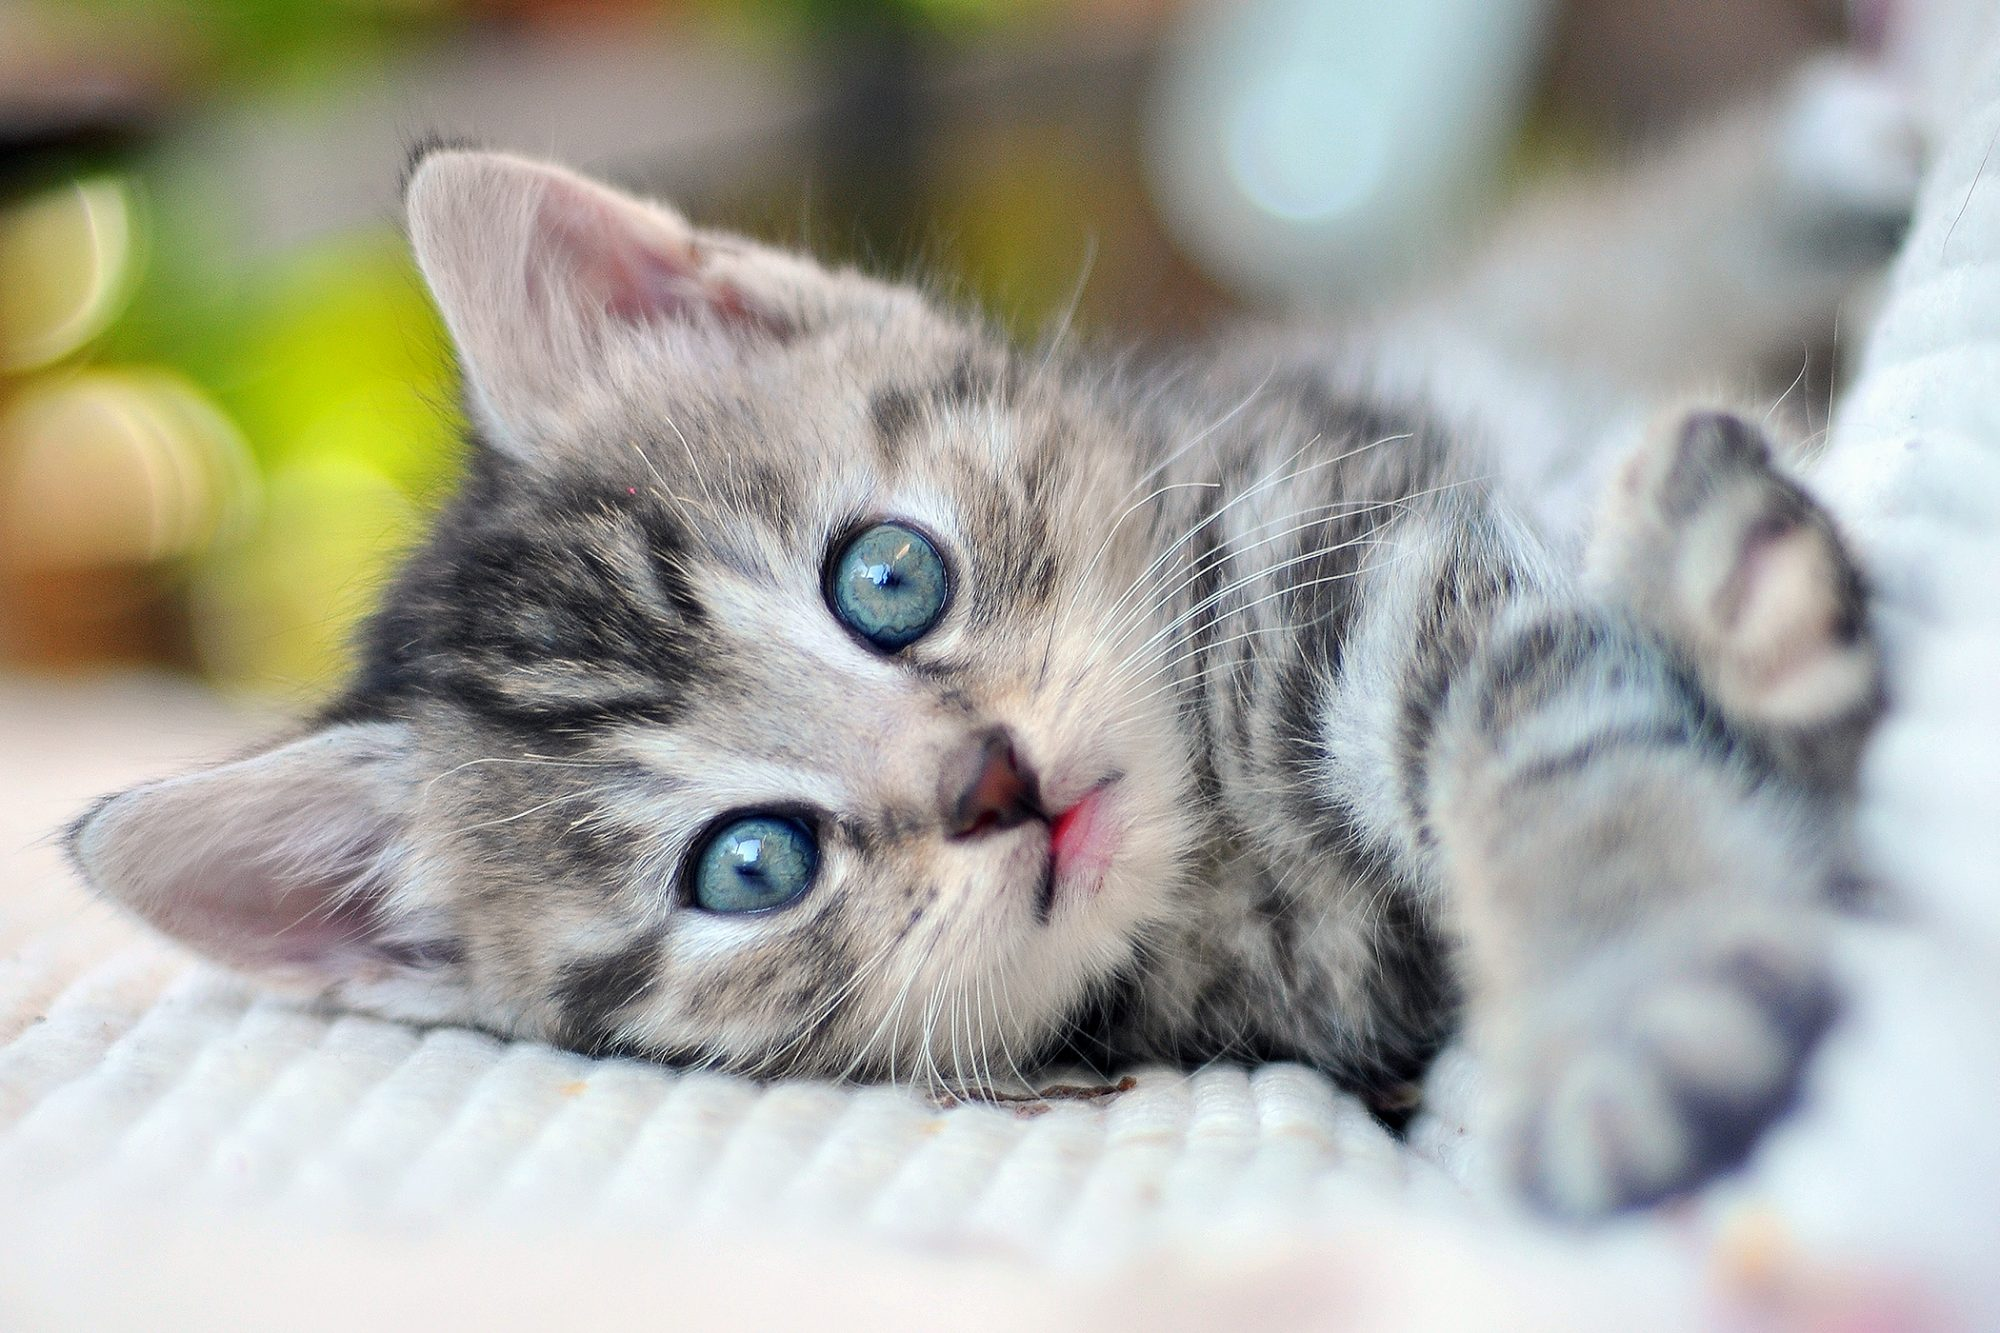 adorable kitten with blue eyes lying on a blanket